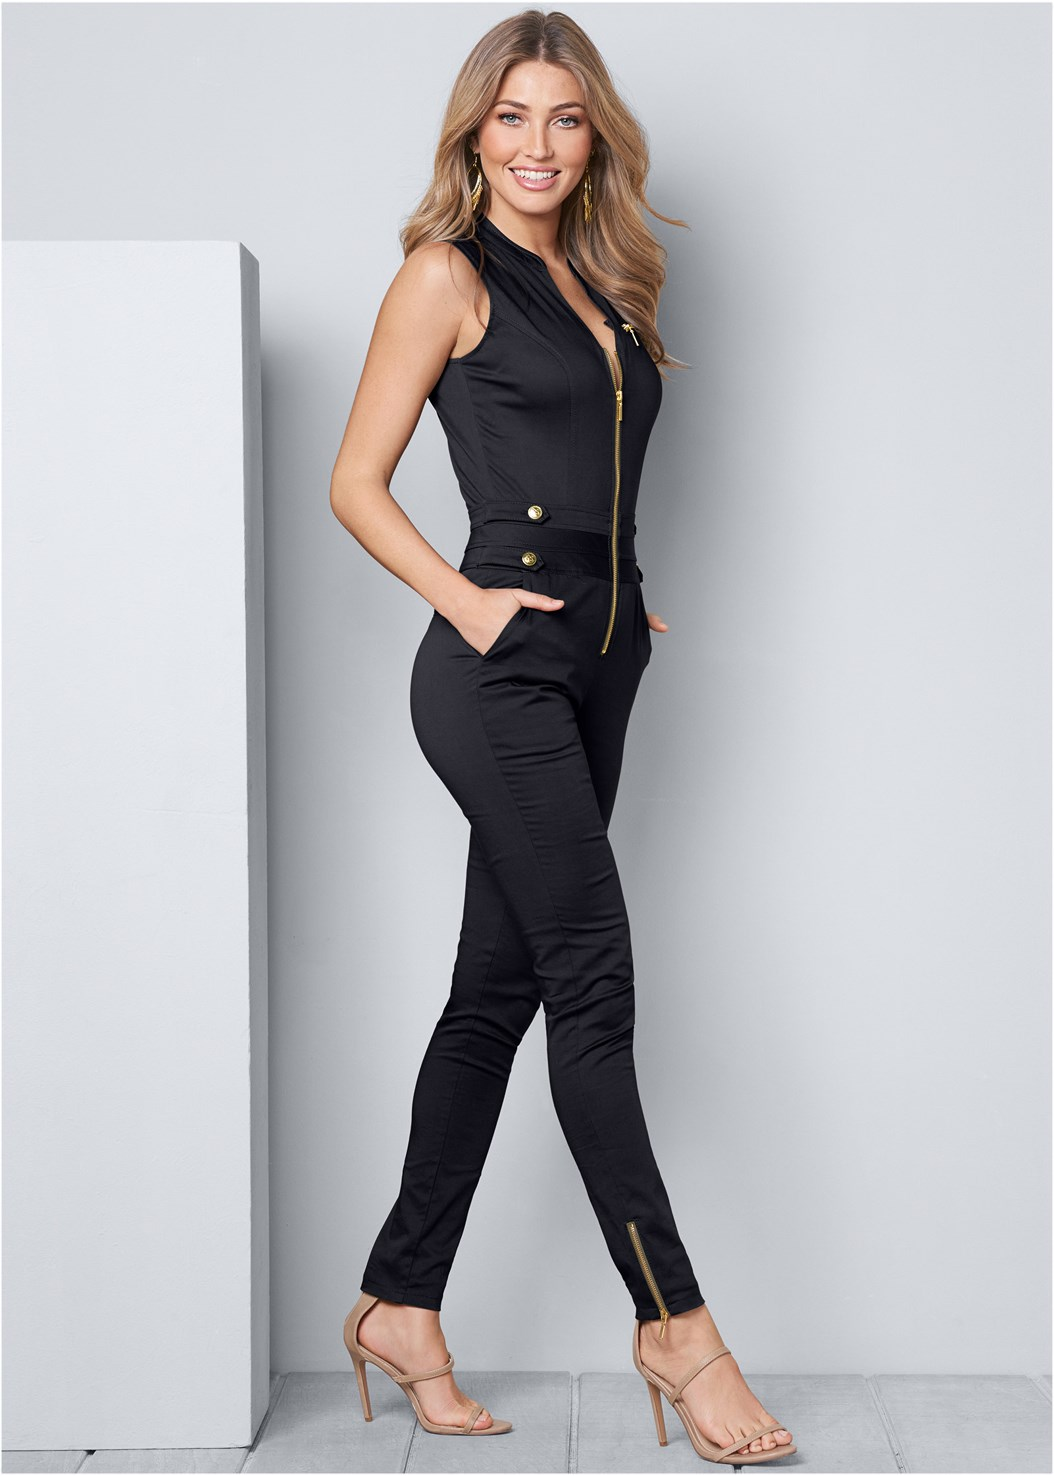 Zip Front Jumpsuit,High Heel Strappy Sandals